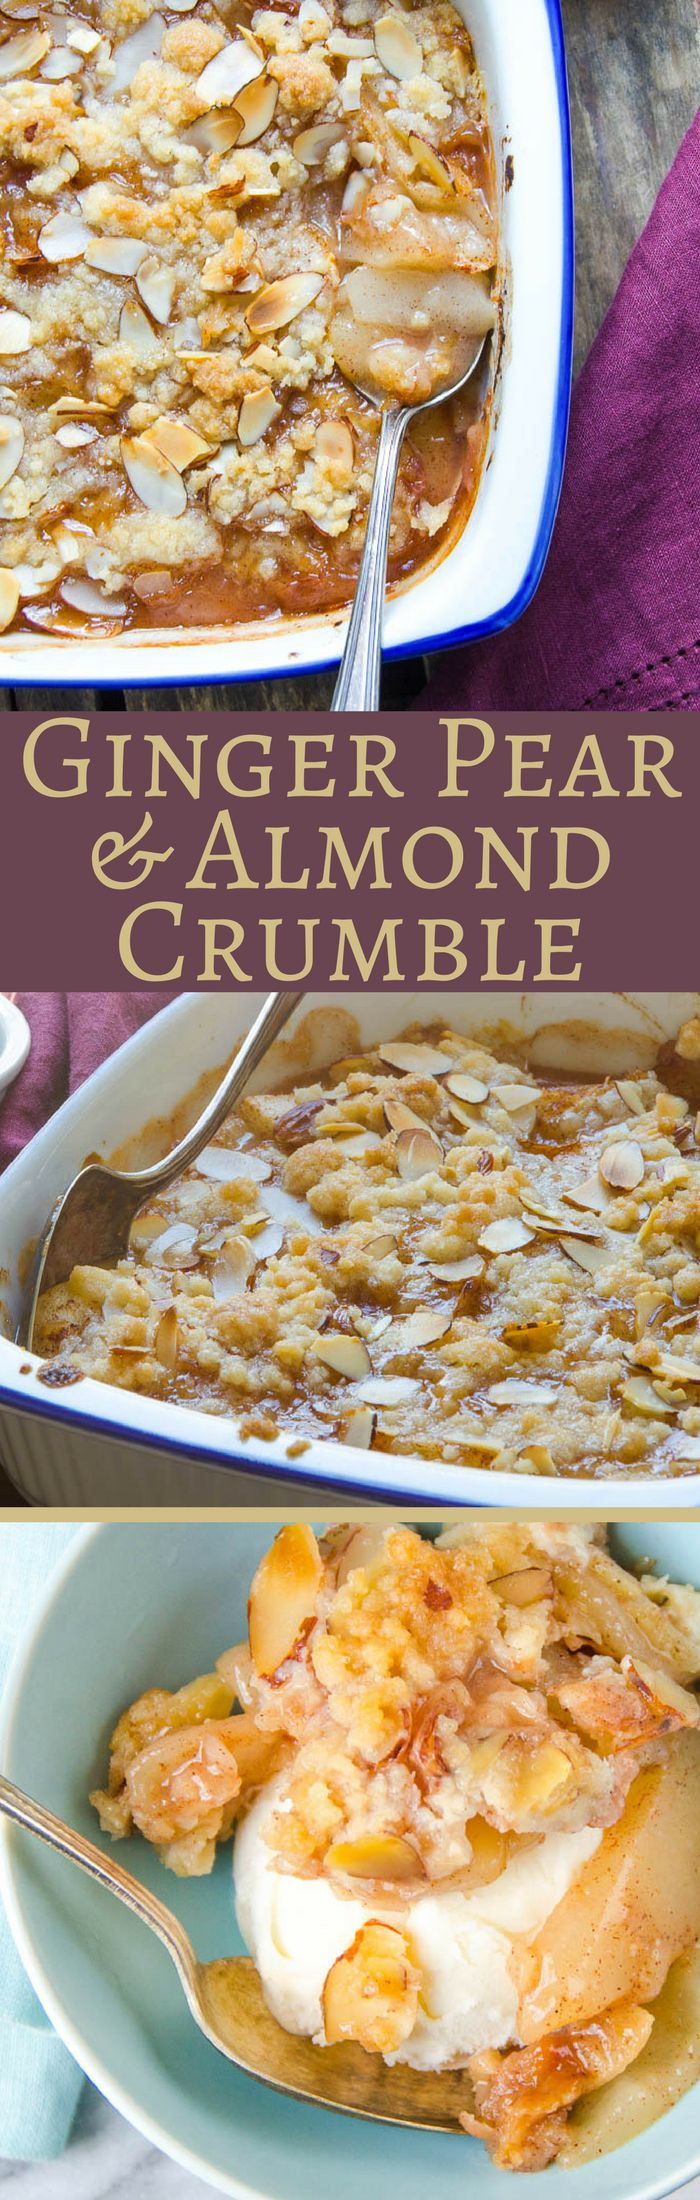 Need a good fall dessert recipe? Ginger Pear and Almond Crumble is great for cooler weather, with a spicy zing from crystalized ginger. Good w/ ice cream.